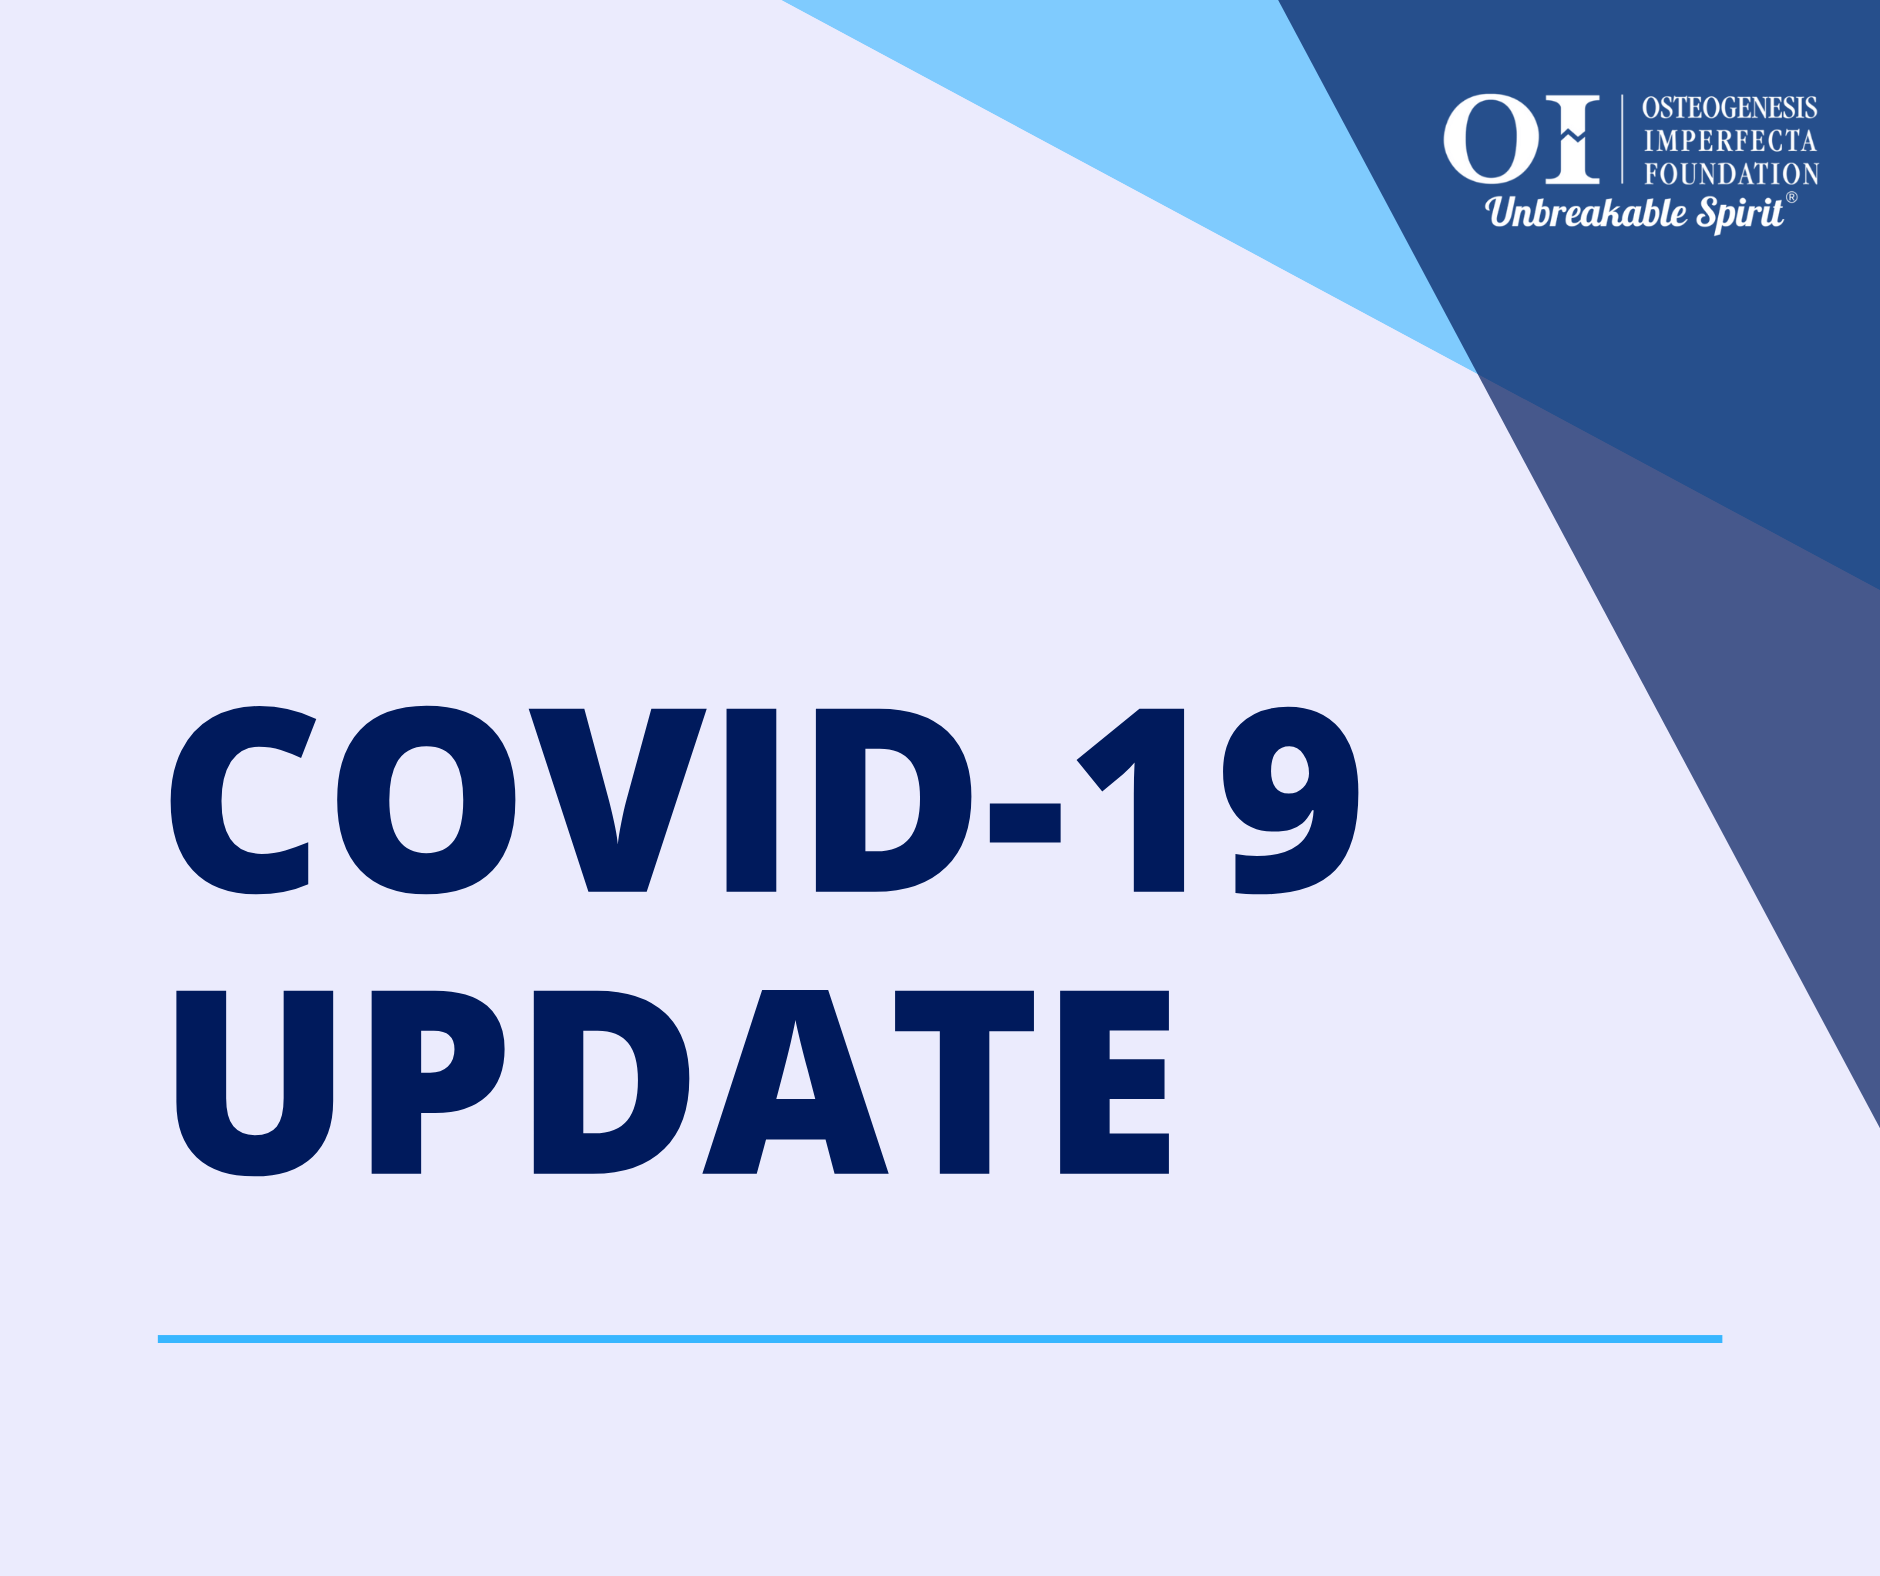 Update from the Centers for Disease Control and Prevention on COVID-19 Booster Shots